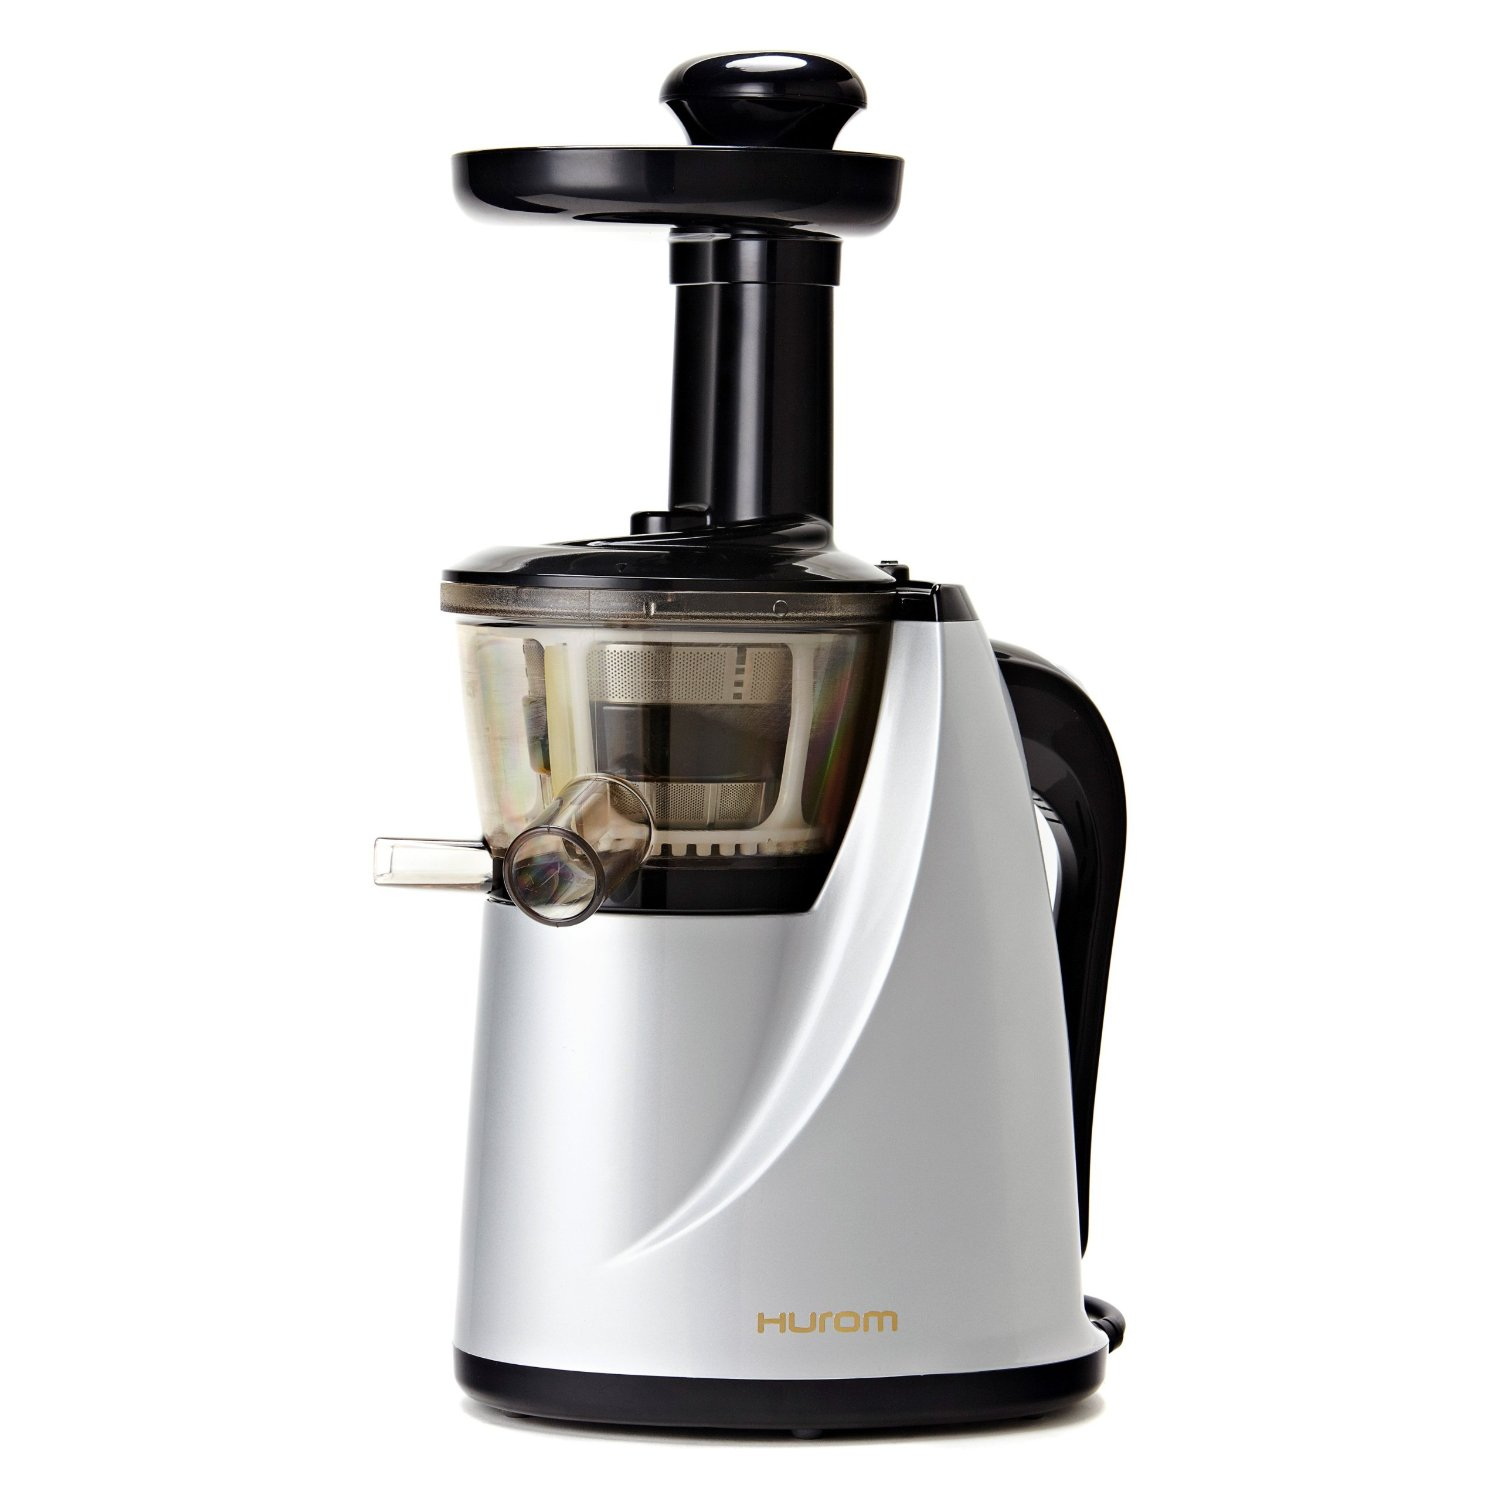 Amgo Slow Juicer Review : Hurom HU-100 Masticating Slow Juicer Review - Best Cold Press Juicers